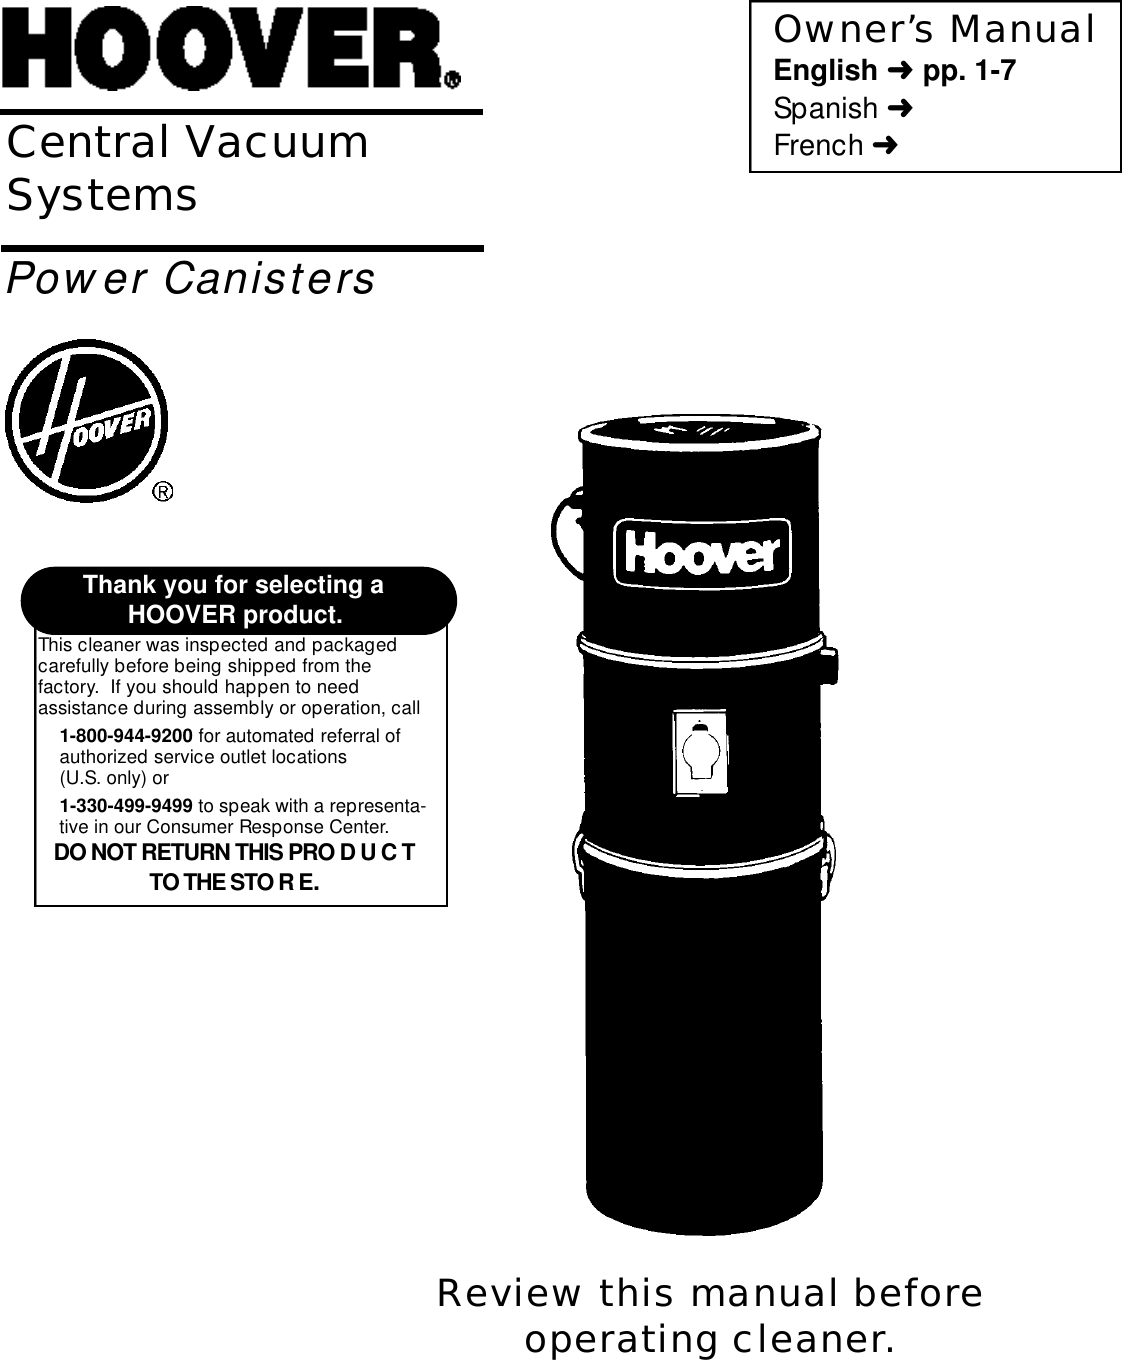 Hoover Central Vacuum Systems Users Manual